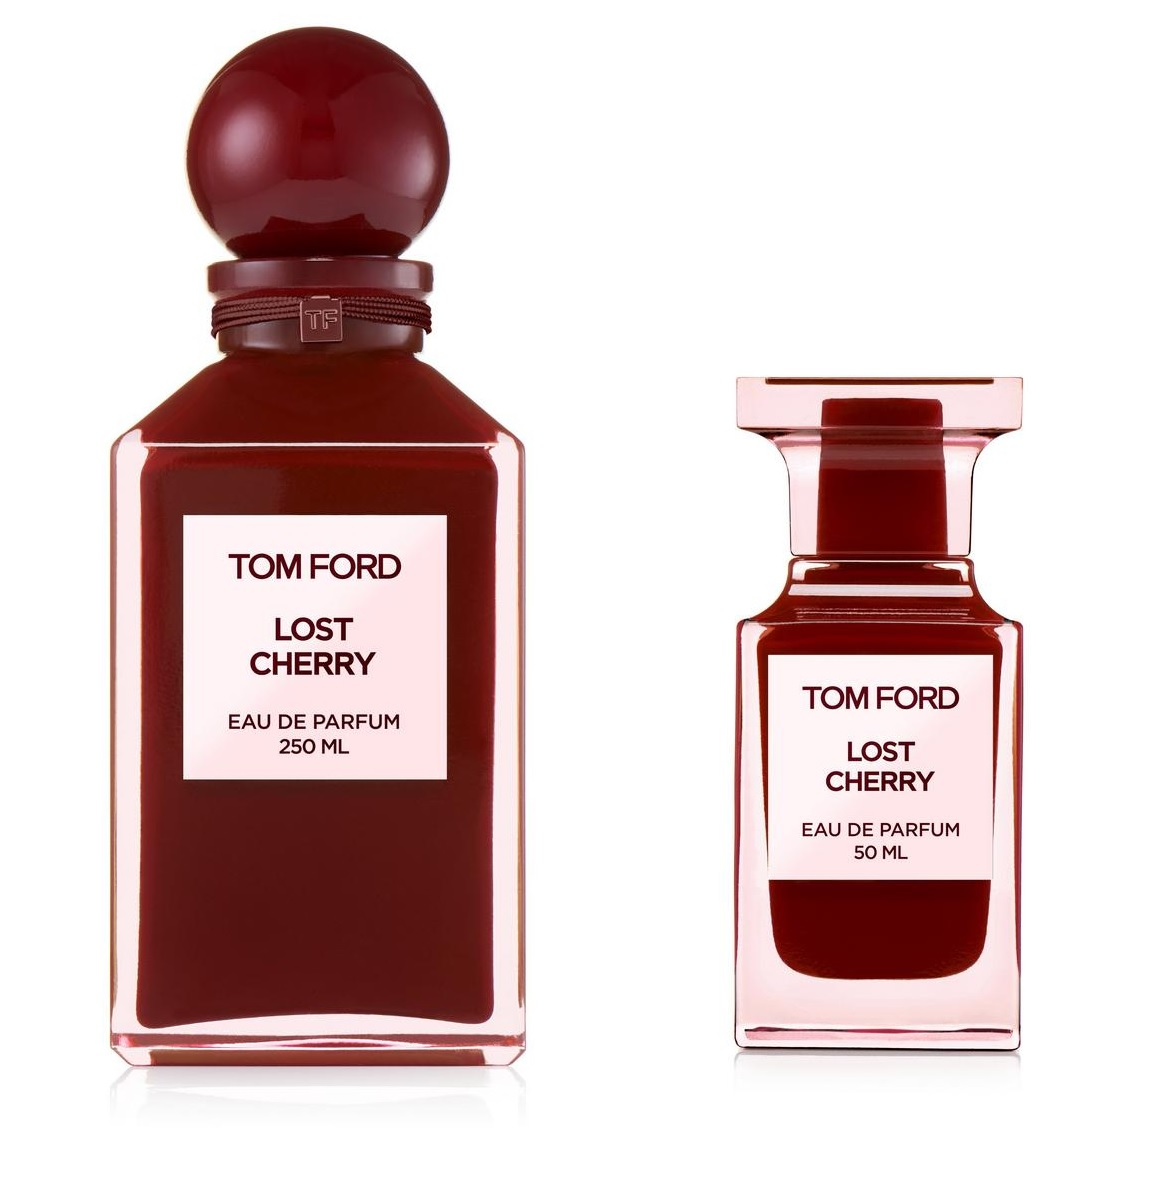 lost cherry tom ford parfum ein neues parfum f r frauen. Black Bedroom Furniture Sets. Home Design Ideas